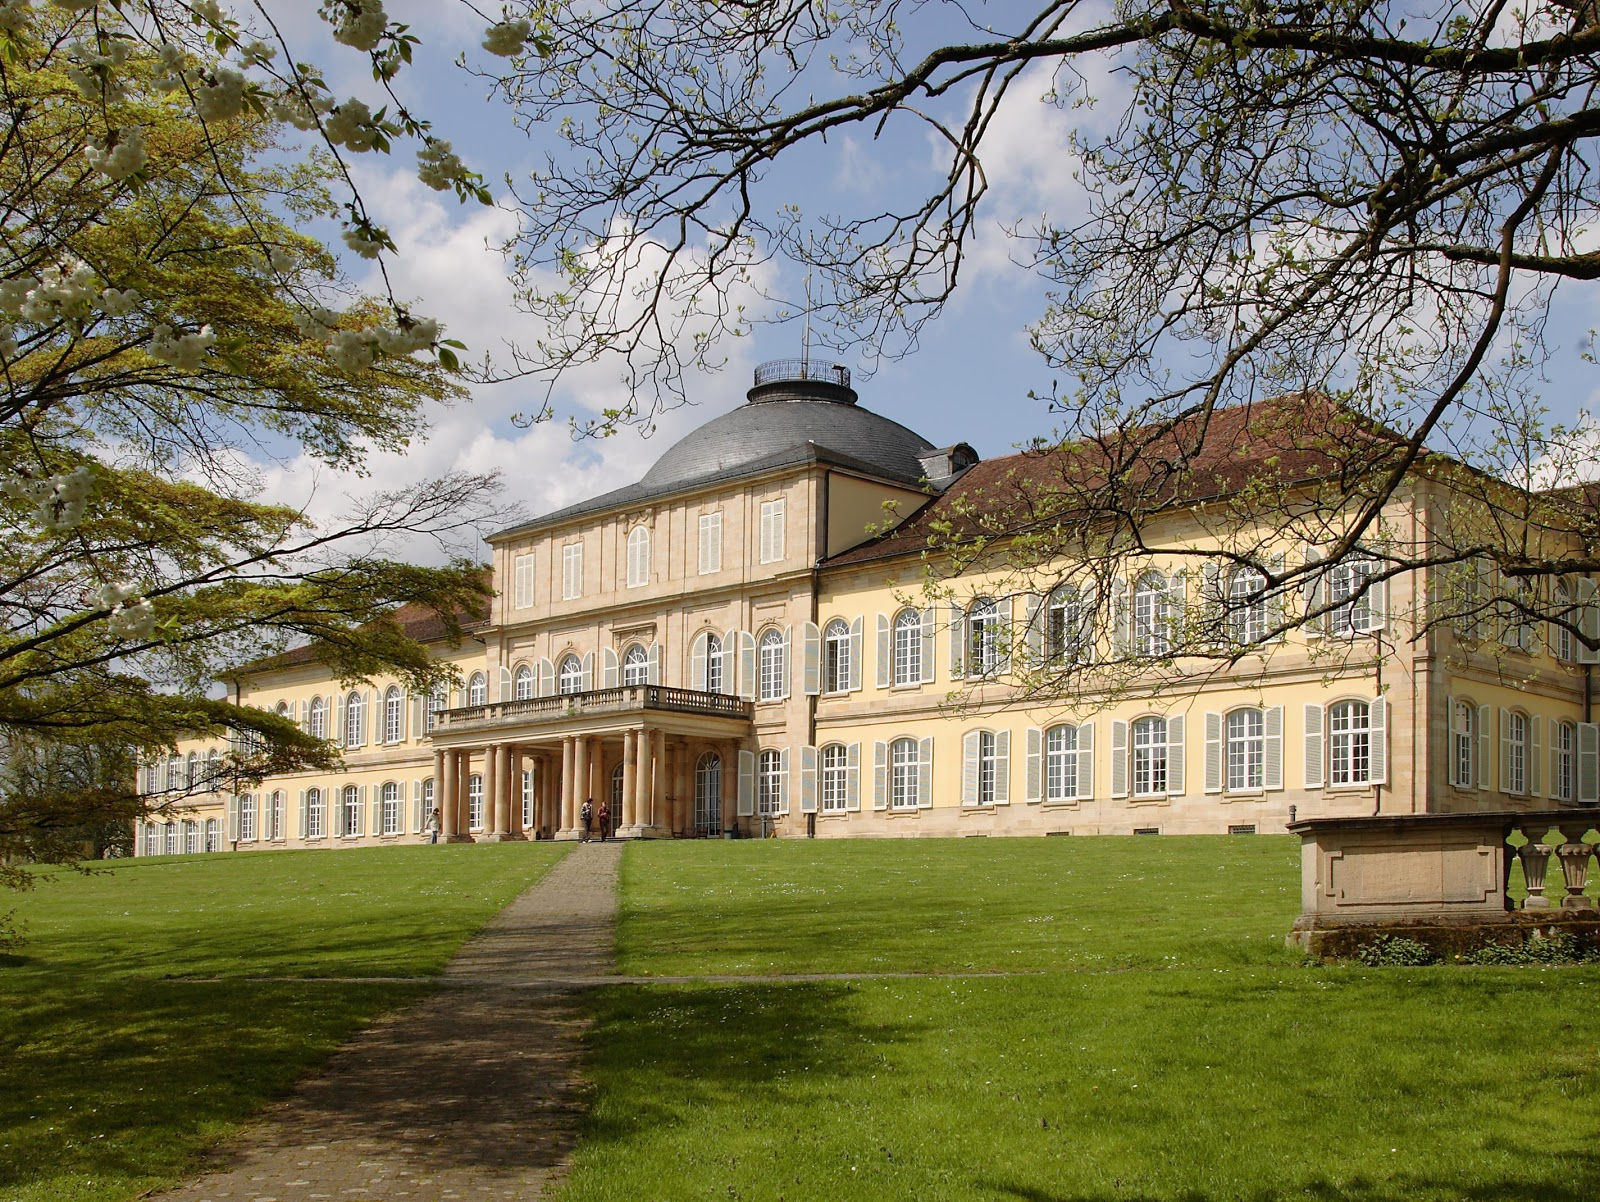 The University of Hohenheim. Photo: University of Hohenheim / Gabriela Hausenstein